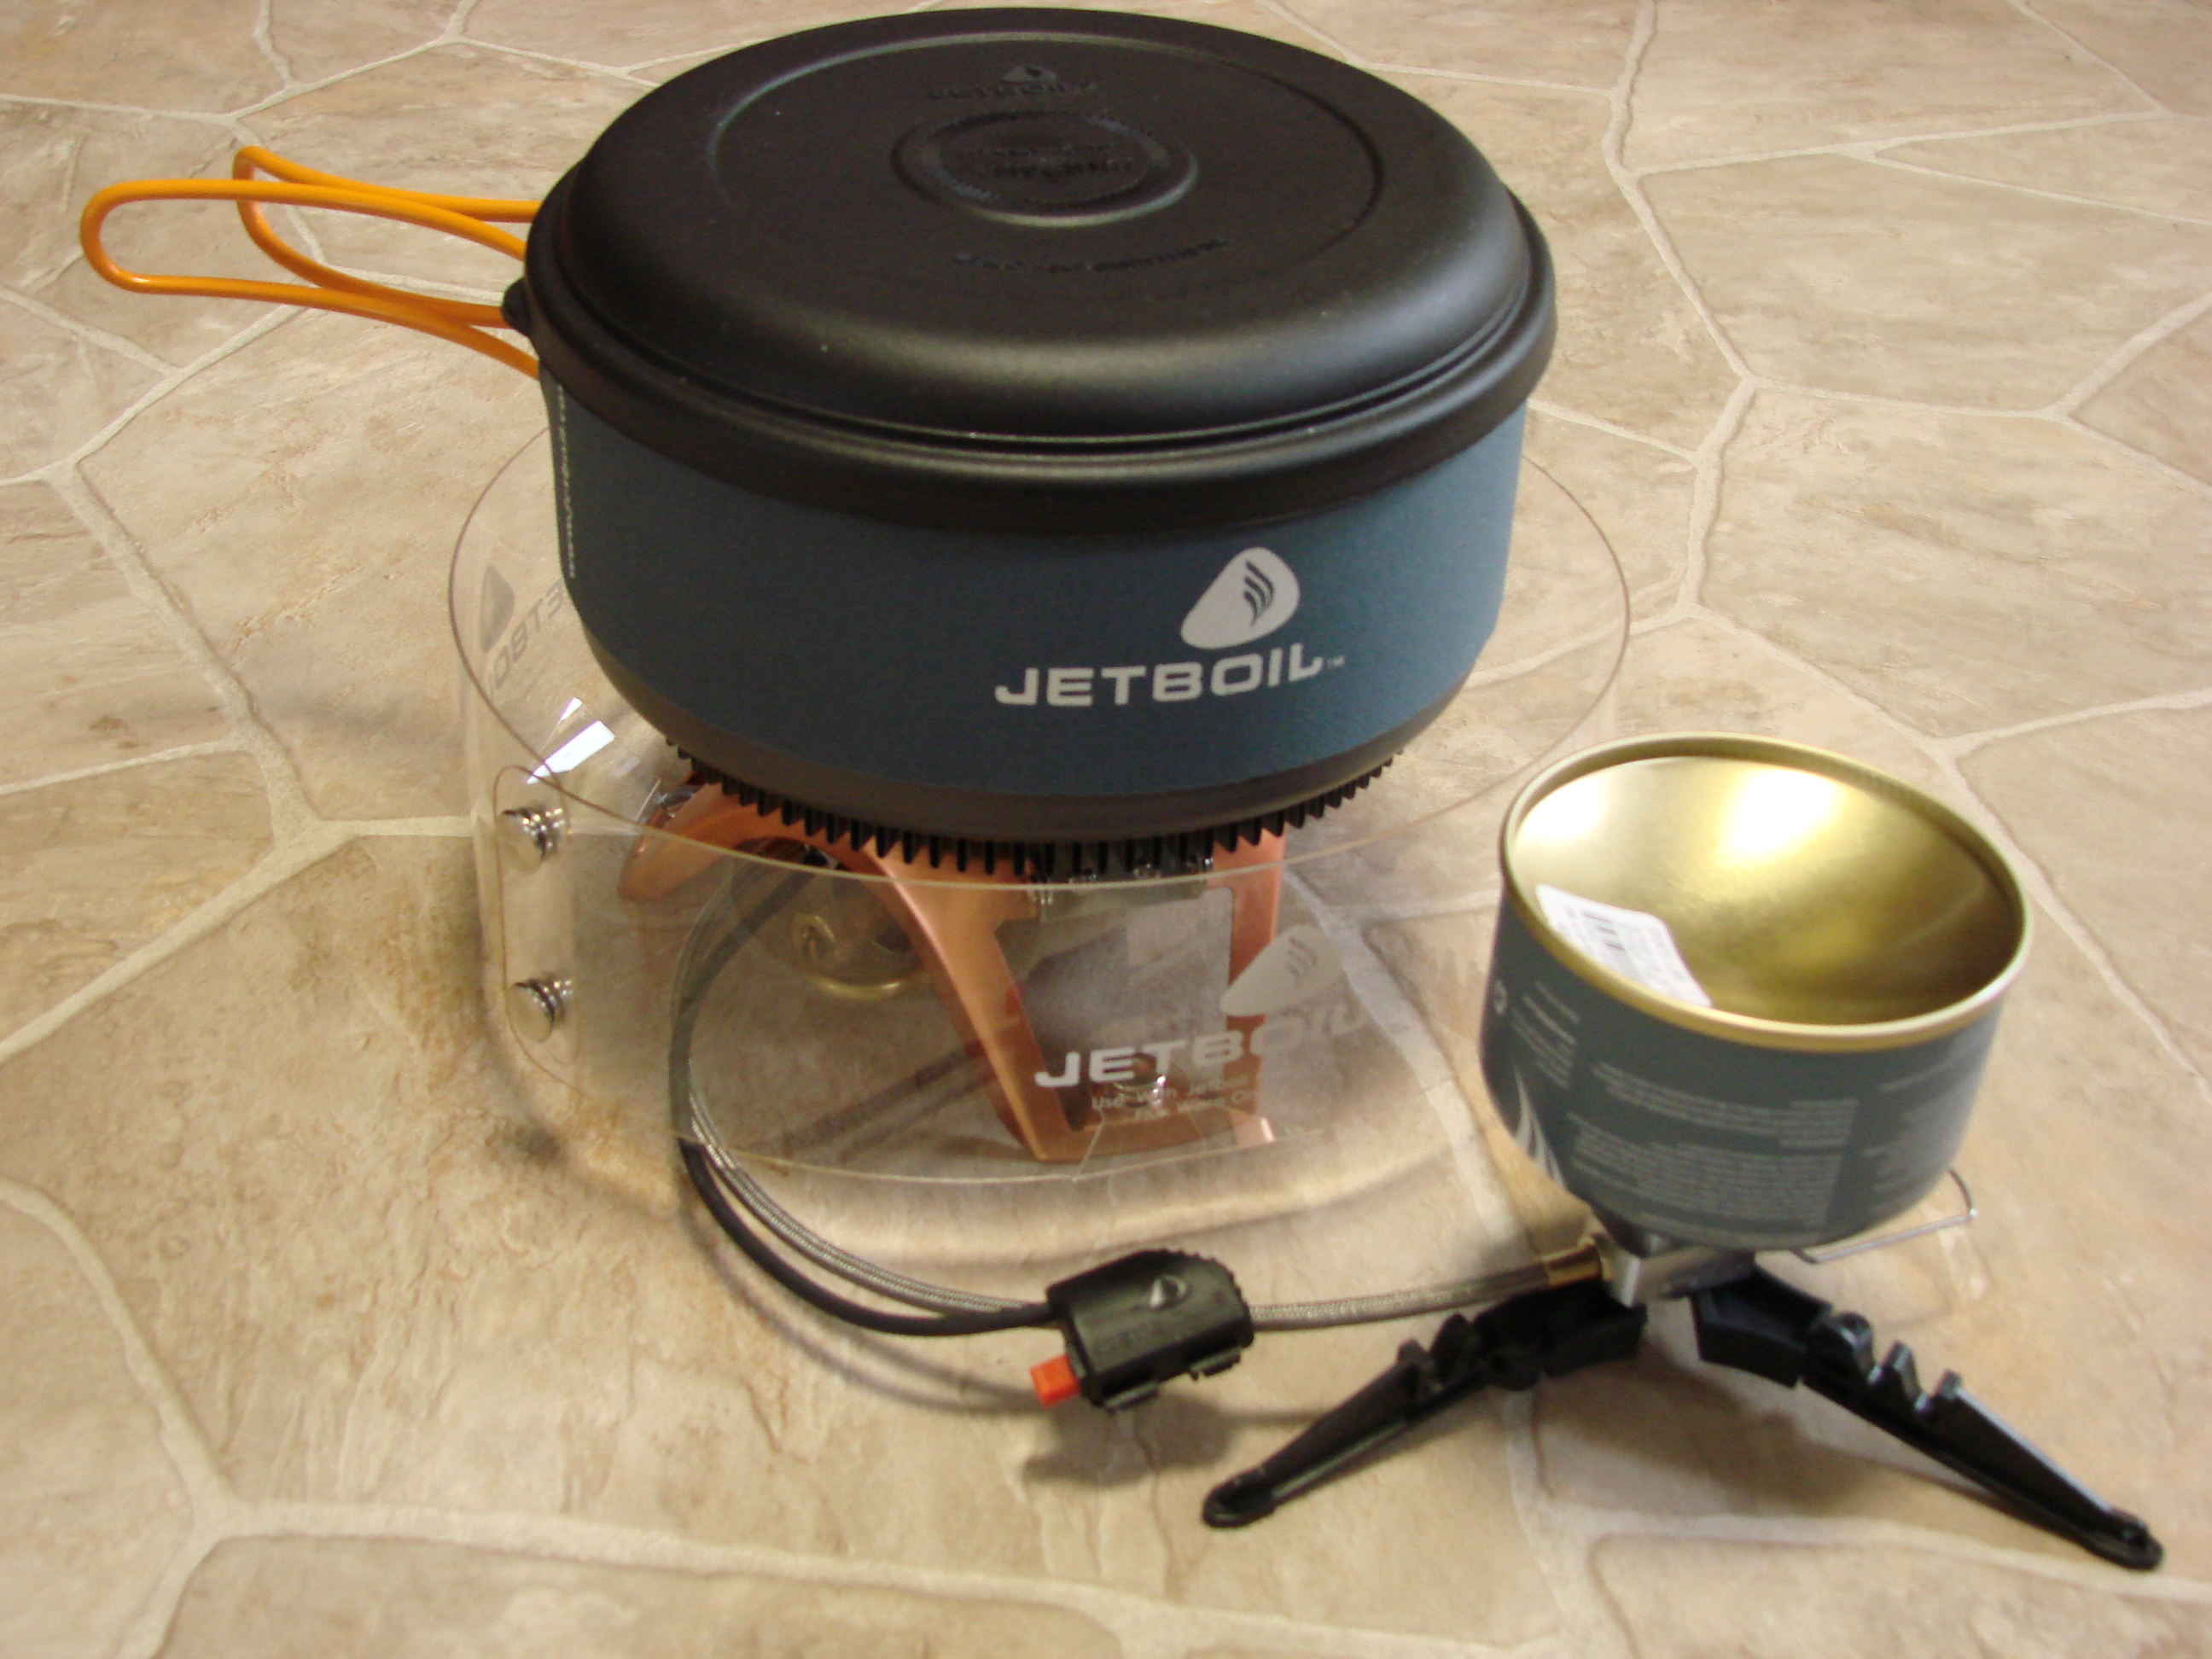 helios by jetboil review